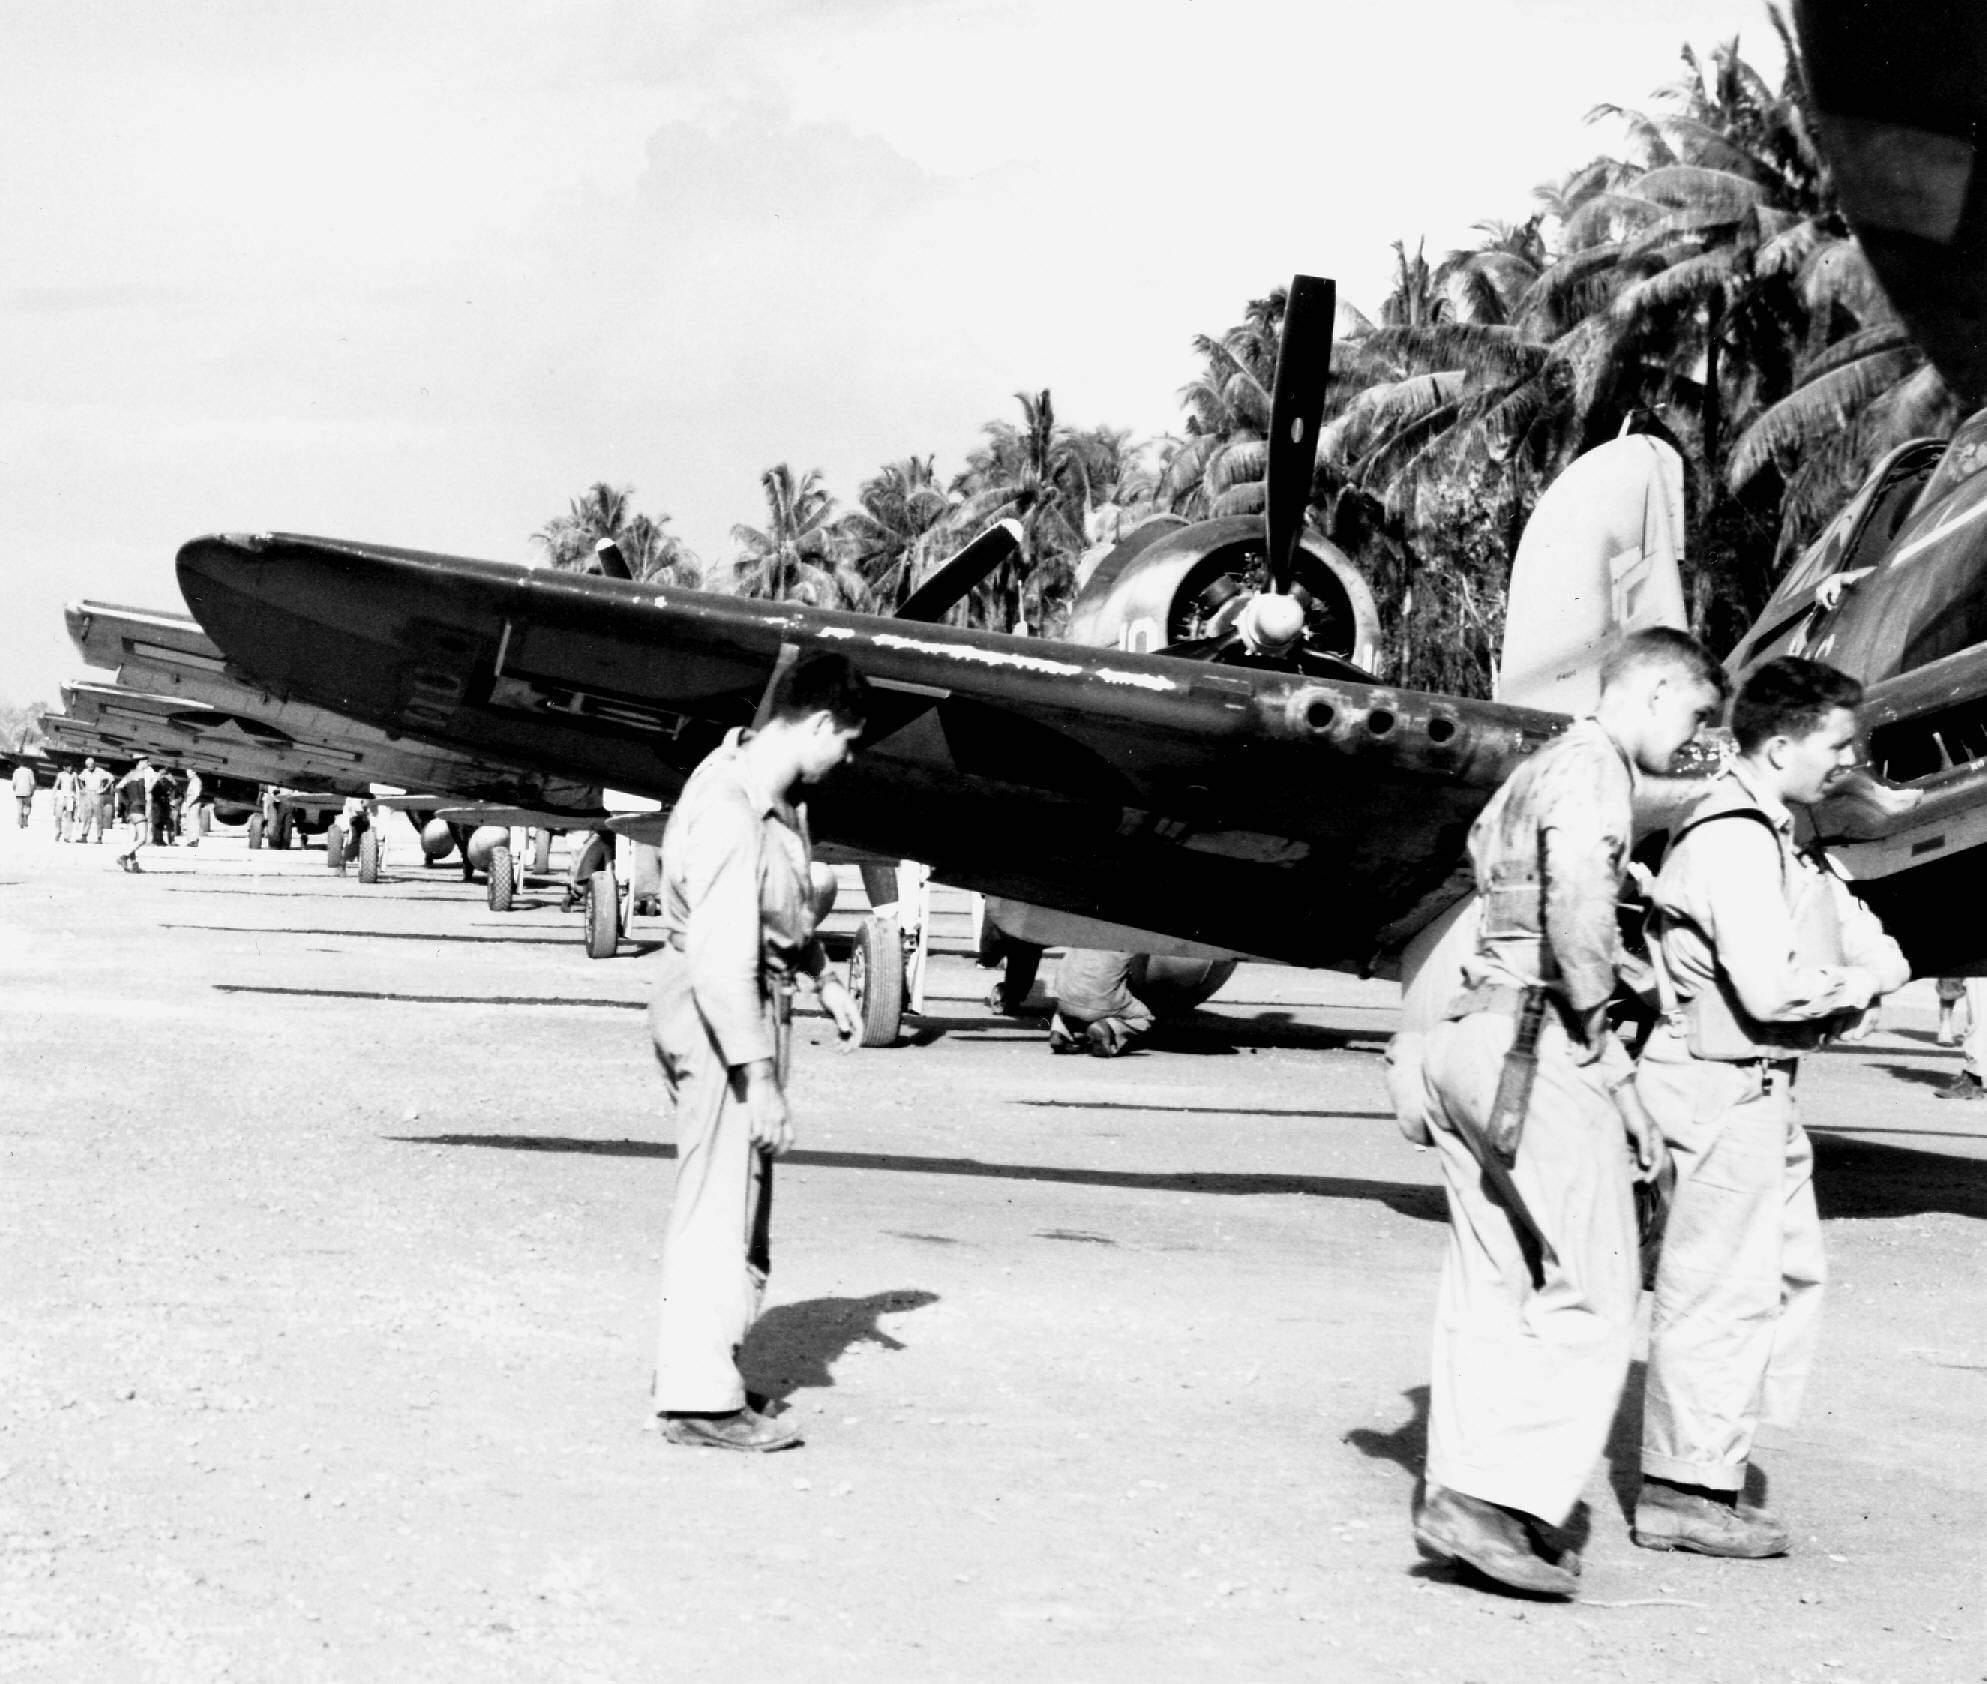 George Ashman Bill Heier & Ed Harper of VMF-214 at Cape Torokina. (Photo by Bruce Gamble Collection)